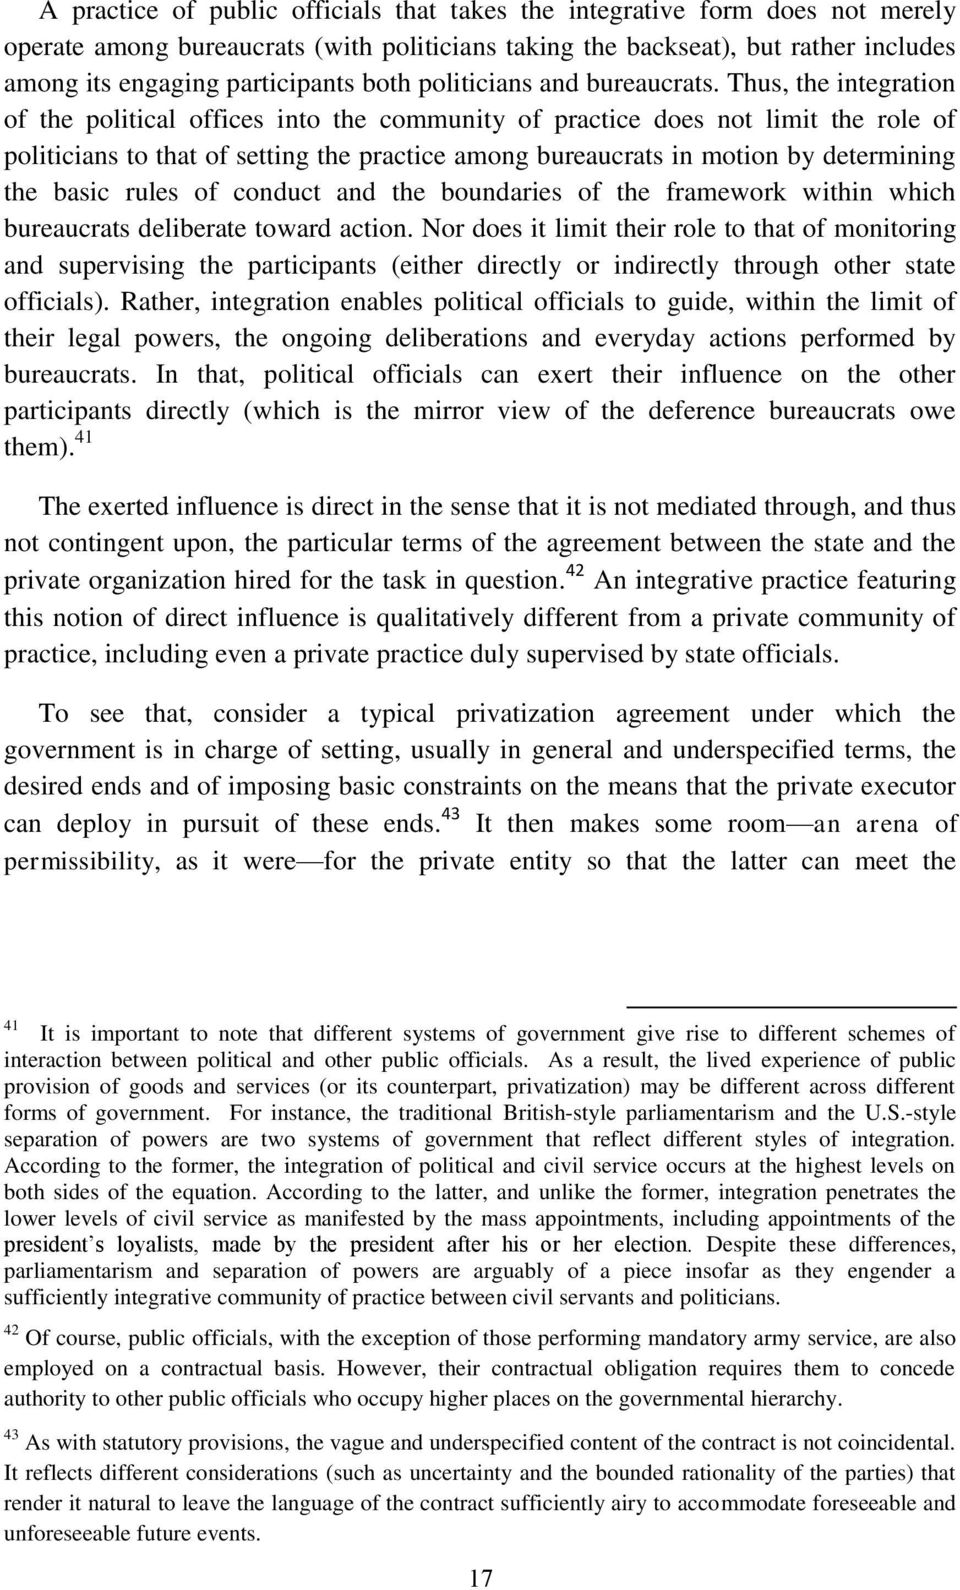 Thus, the integration of the political offices into the community of practice does not limit the role of politicians to that of setting the practice among bureaucrats in motion by determining the